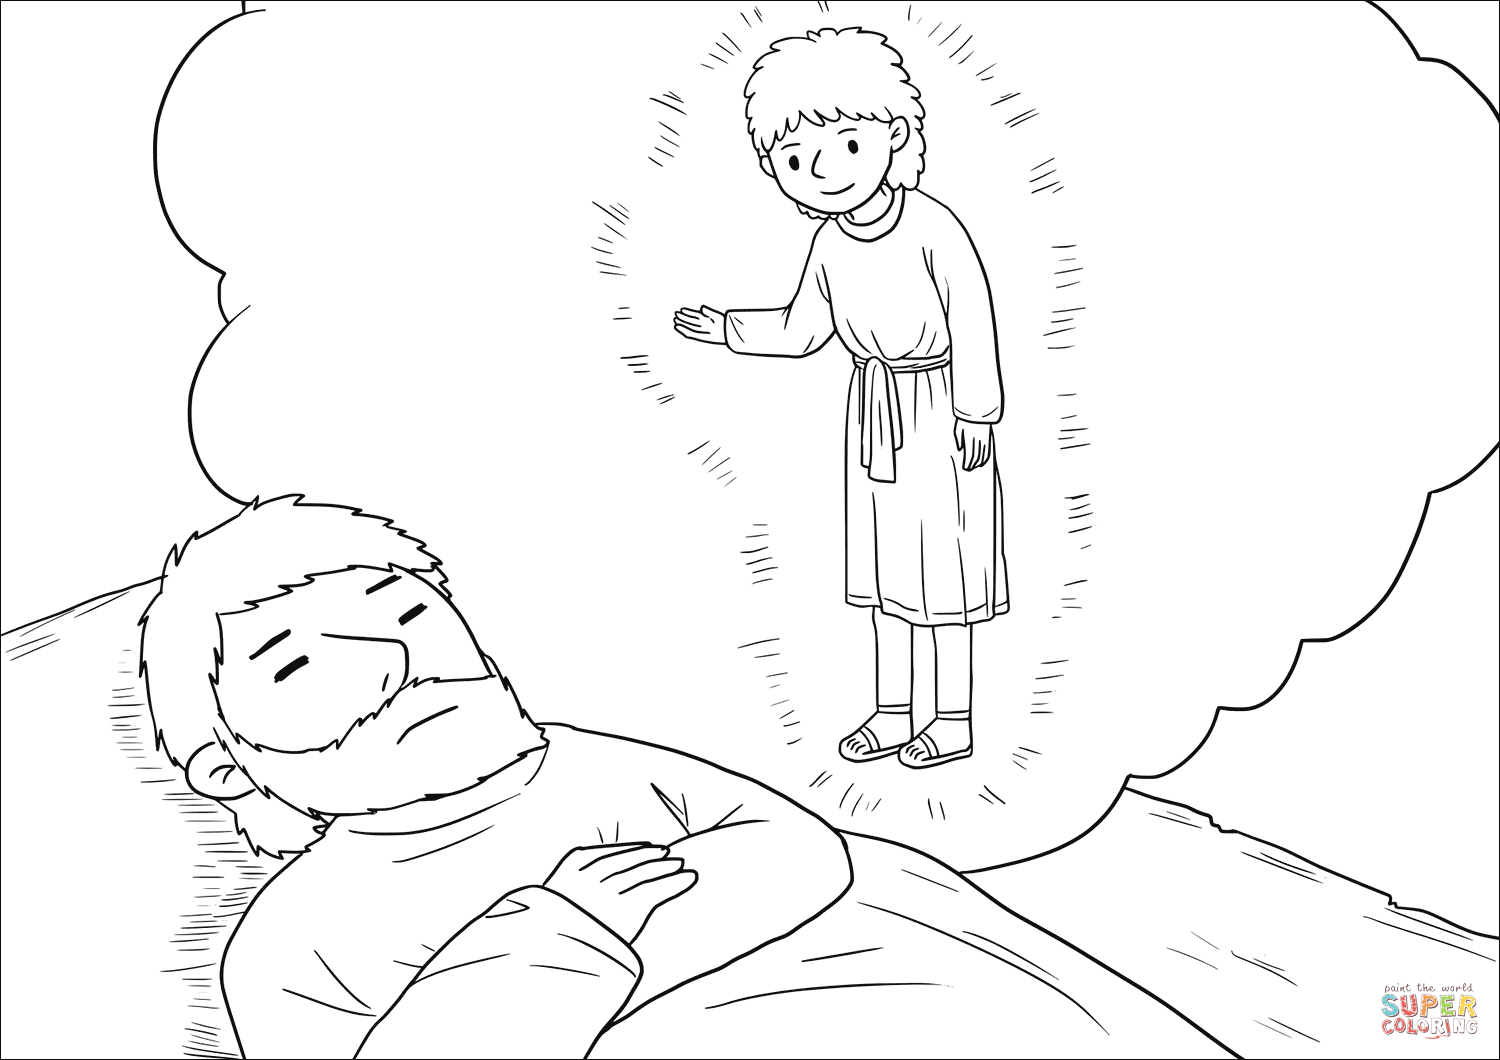 Angel Visits Joseph Coloring Page An Angel Of The Lord Appeared To Joseph In A Dream Coloring Page